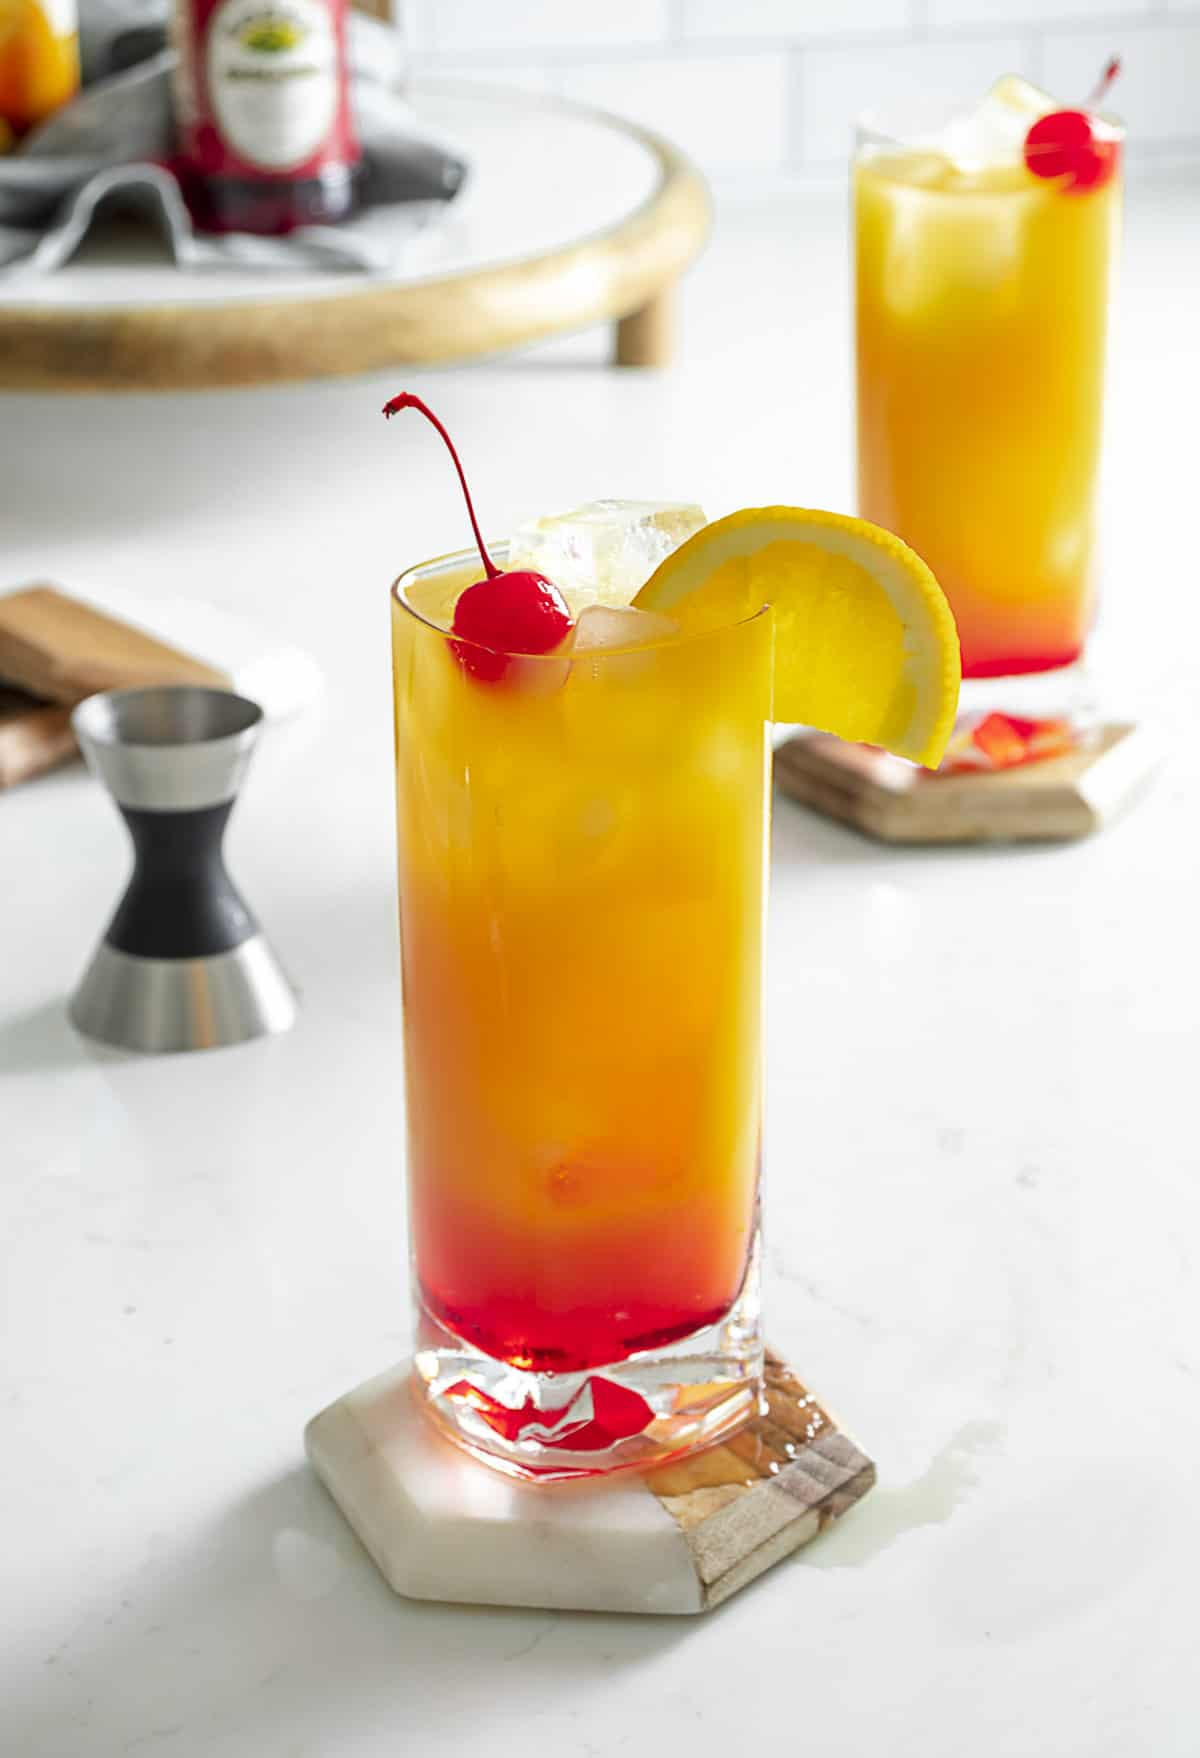 Two vodka sunrise cocktails on table with cherry and orange slice for garnish.